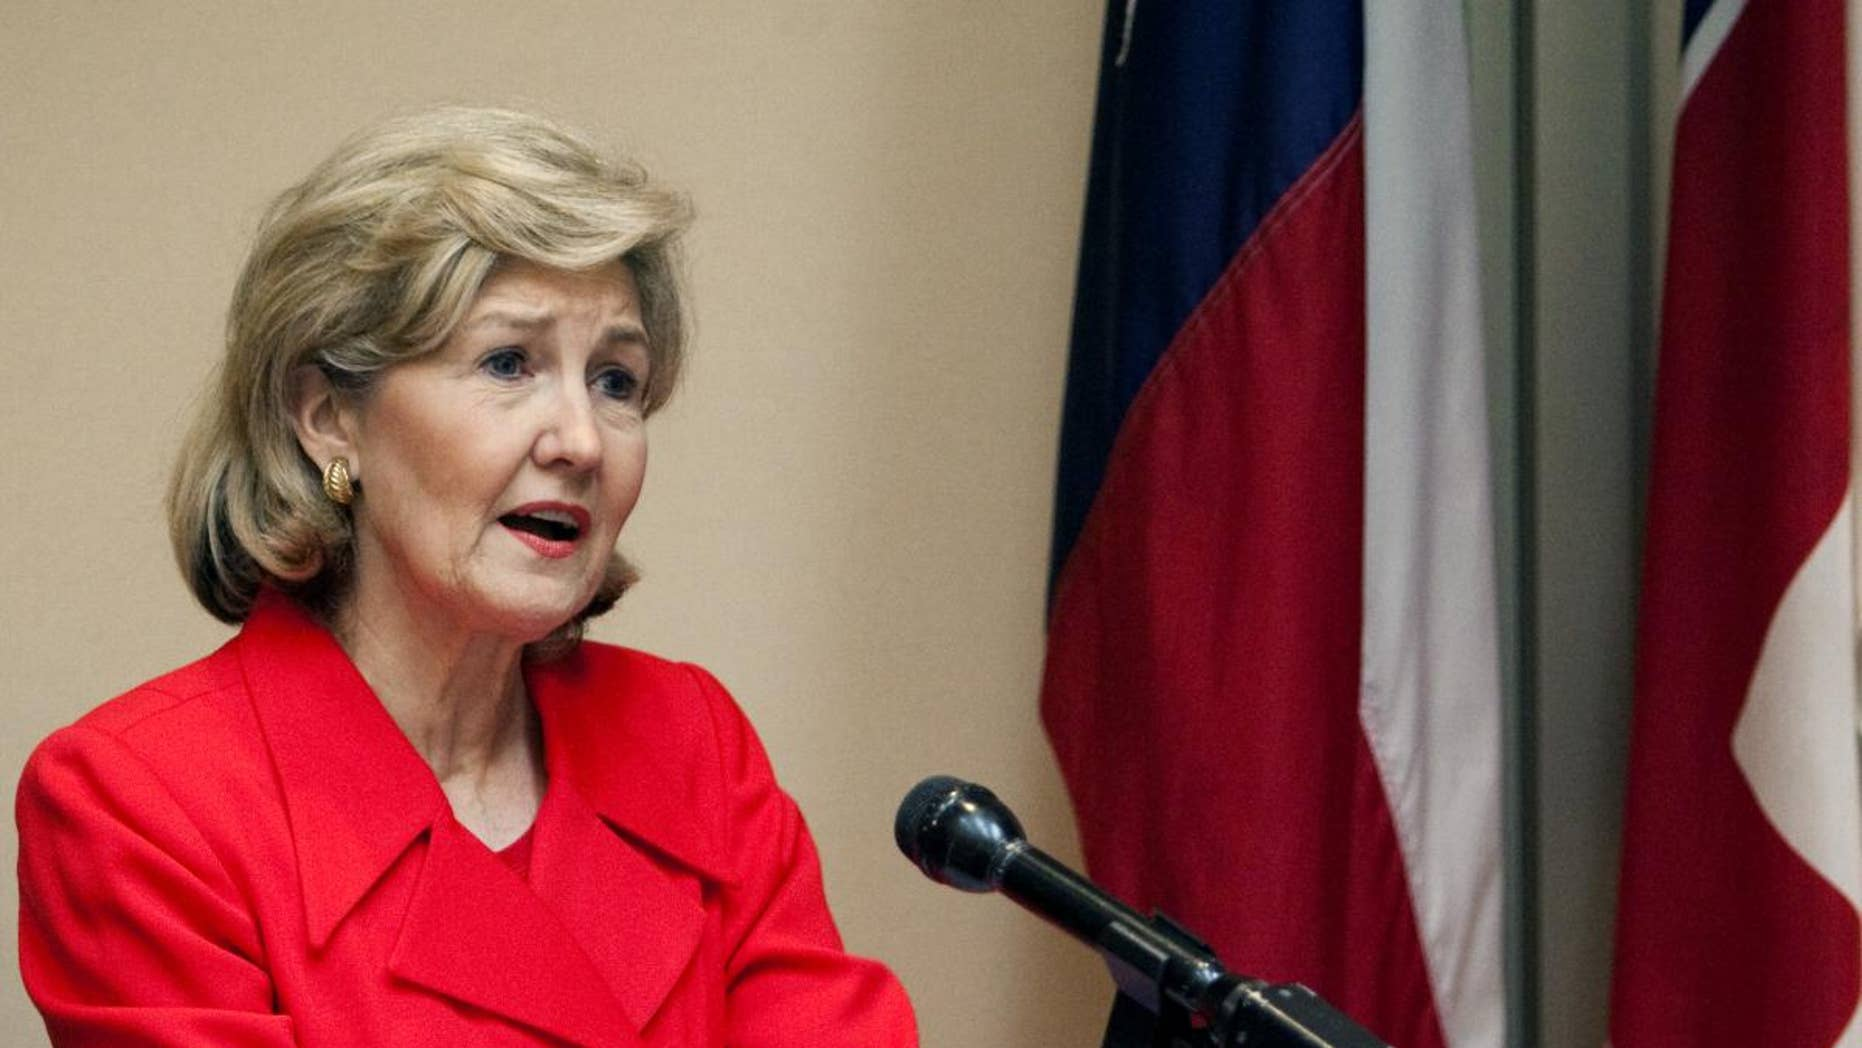 FILE - In this Jan. 19, 2010, file photo Sen. Kay Bailey Hutchison, R-Texas, addresses the Greater Houston Pachyderm Club in Houston. Hutchison announced Thursday, Jan. 13, 2011, that she will retire after her current term expires next year. (AP Photo/Bob Levey, File)